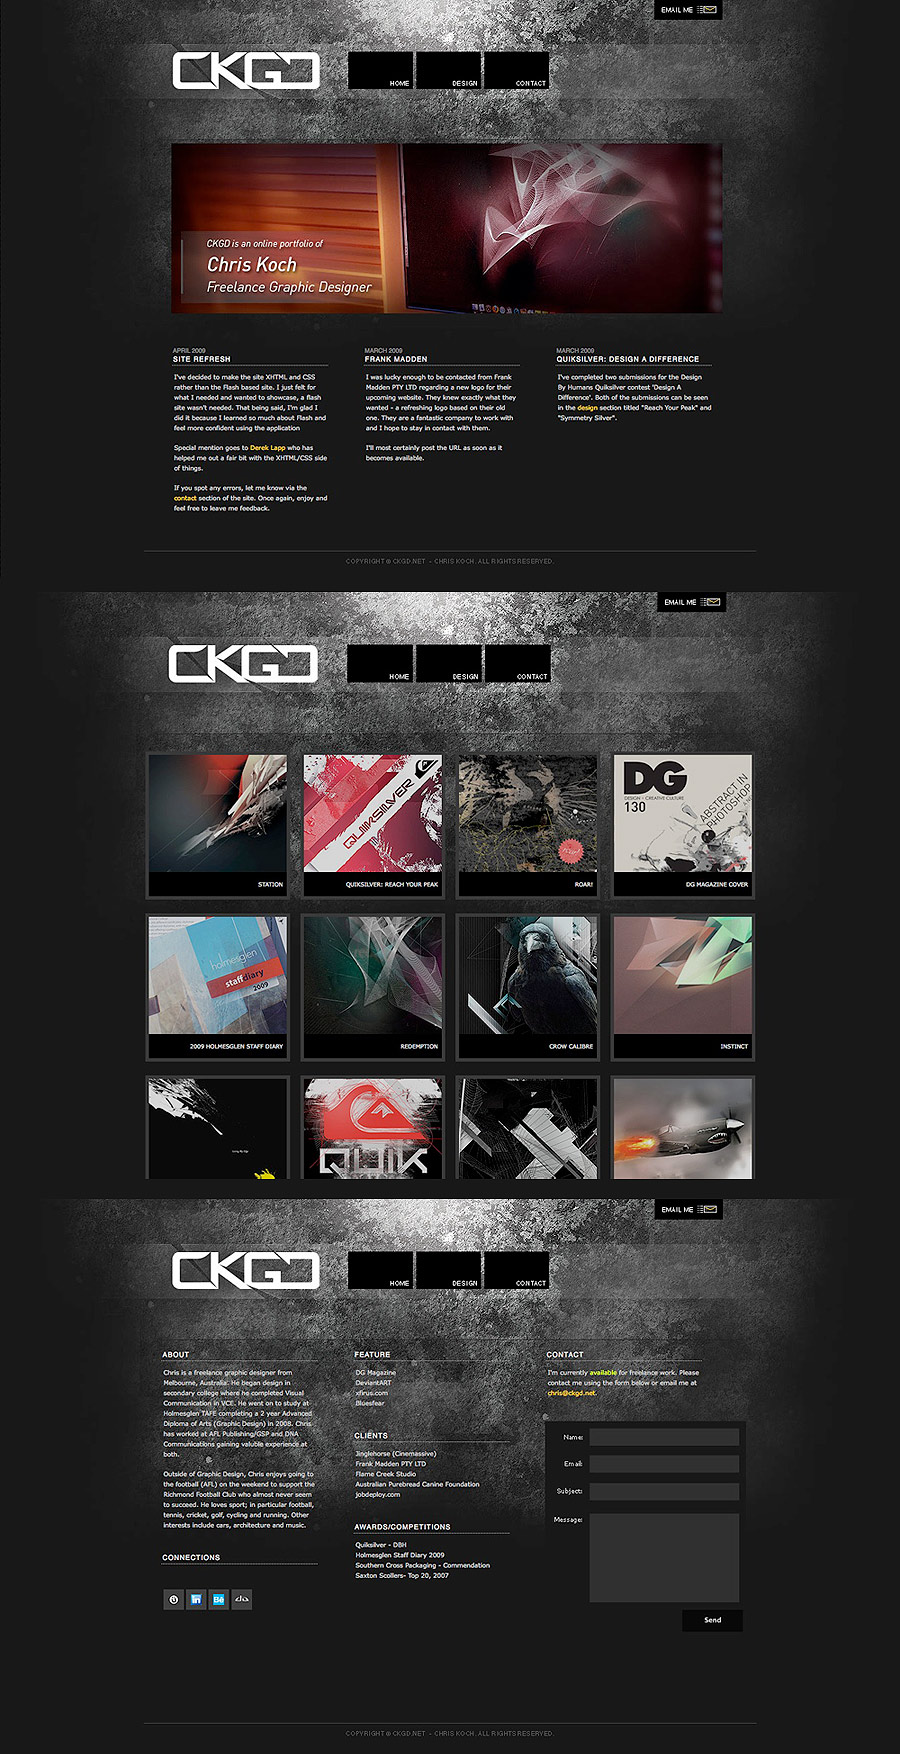 CKGD.net Website Version 2 by kocho